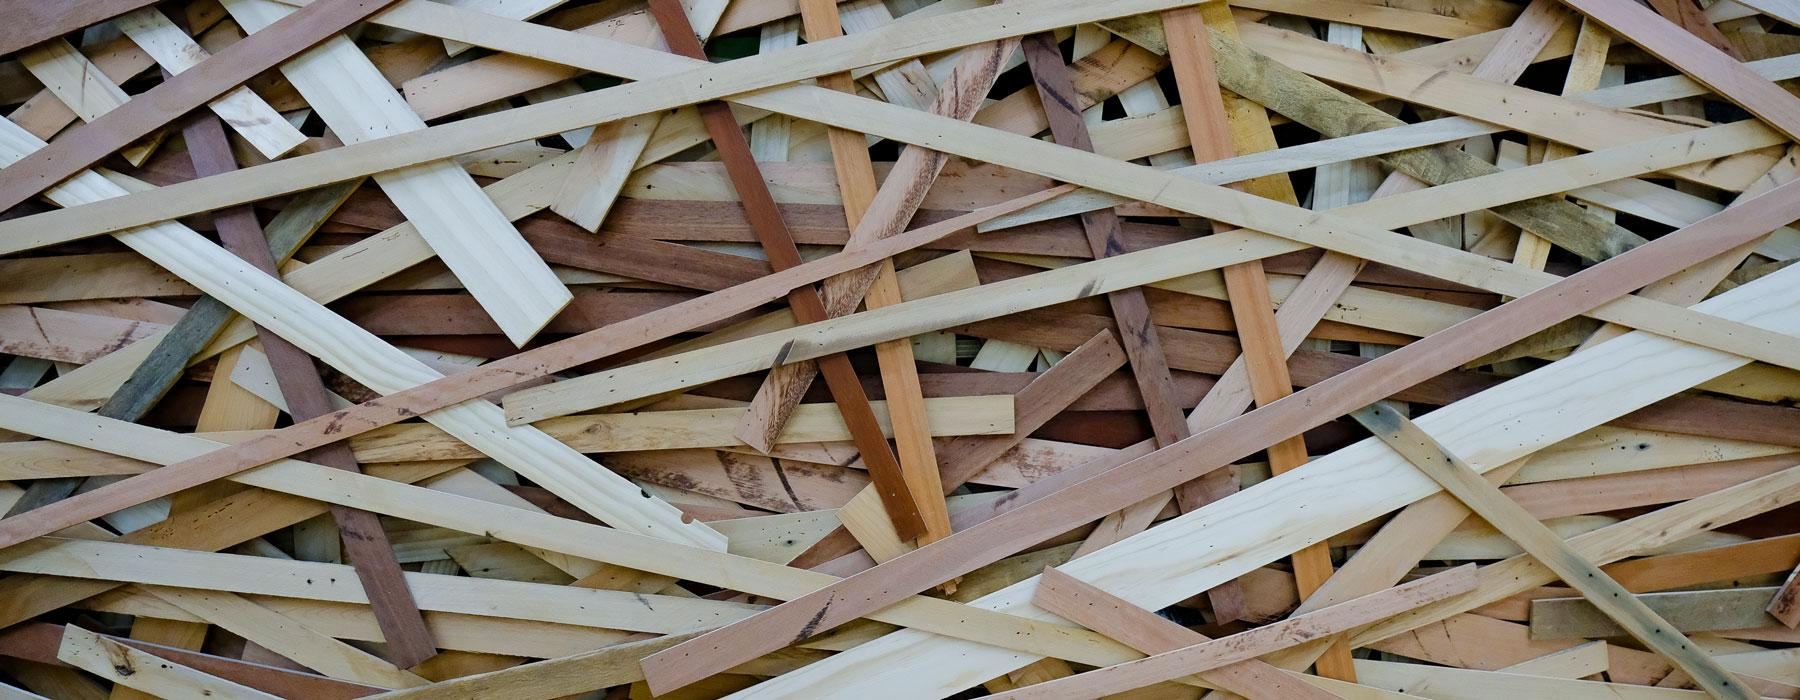 Wooden materials placed together to look like a nest